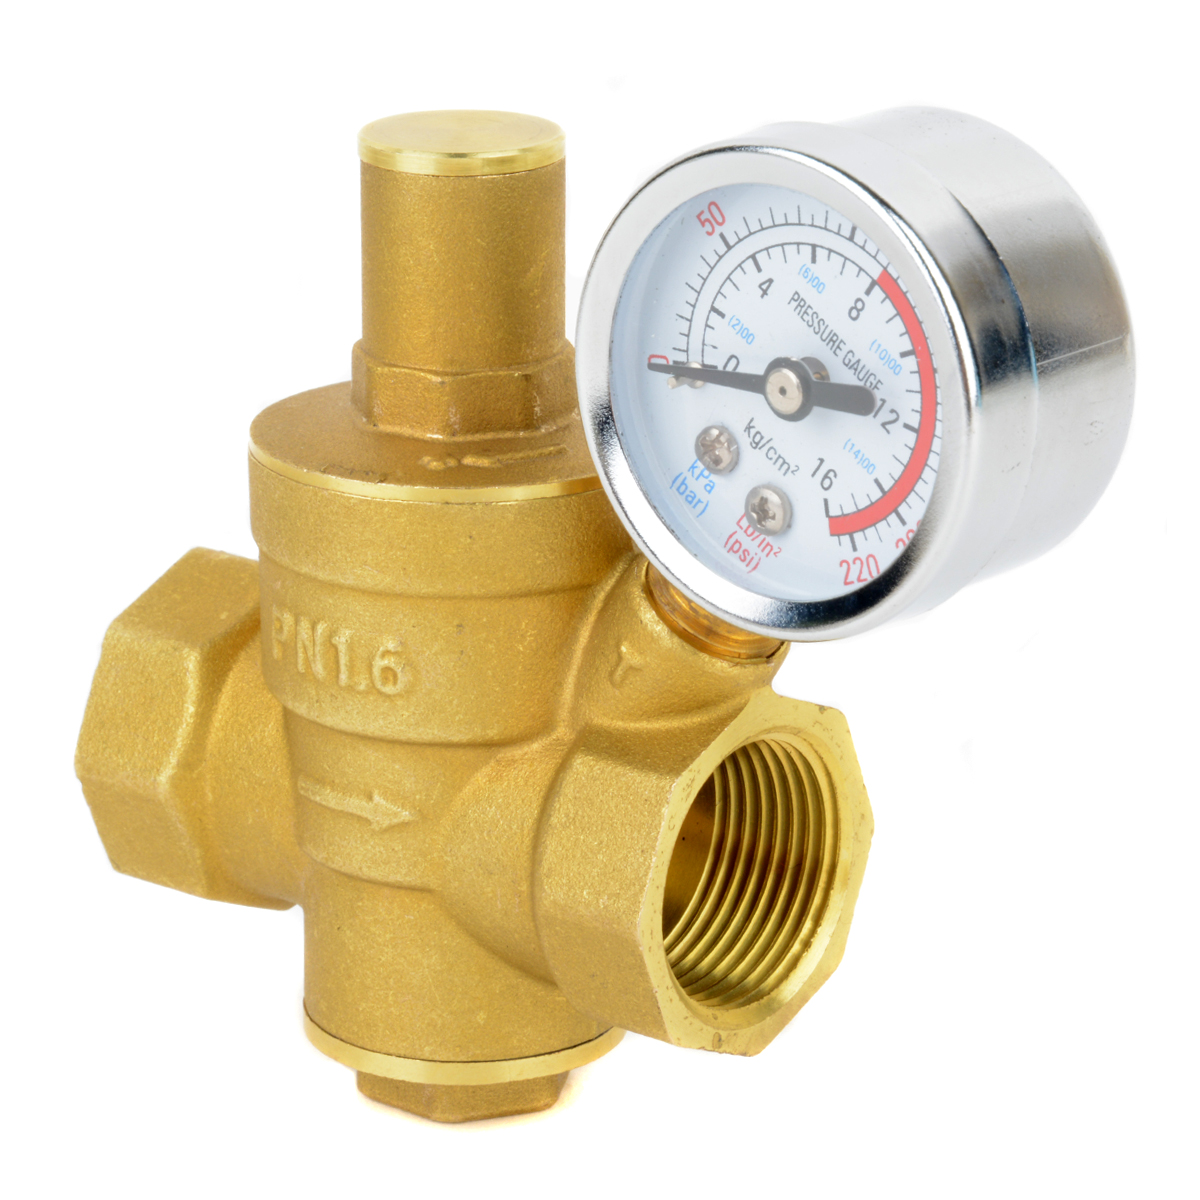 DN20 3/4'' Brass Water Pressure Reducing Maintaining Valves Regulator Mayitr Adjustable Relief Valves With Gauge Meter 85*63mm